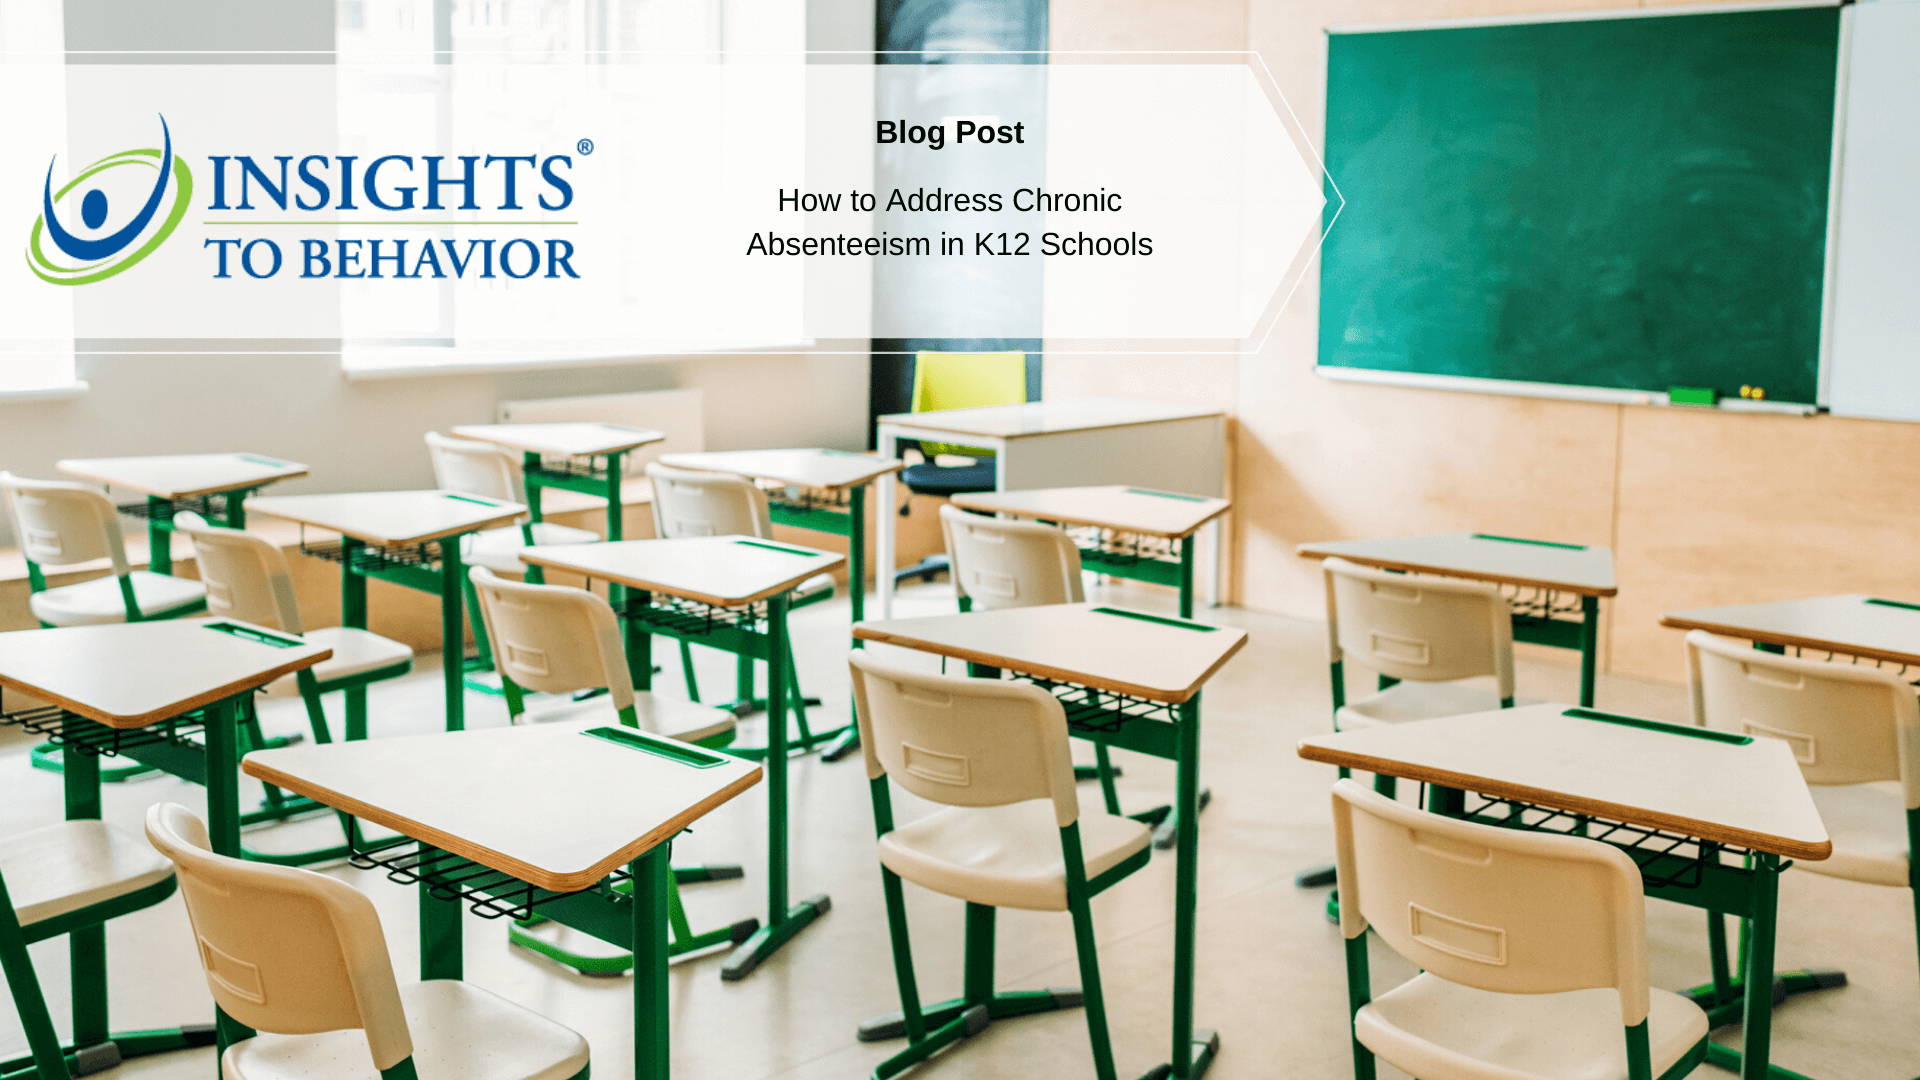 How to Address Chronic Absenteeism in K12 Schools